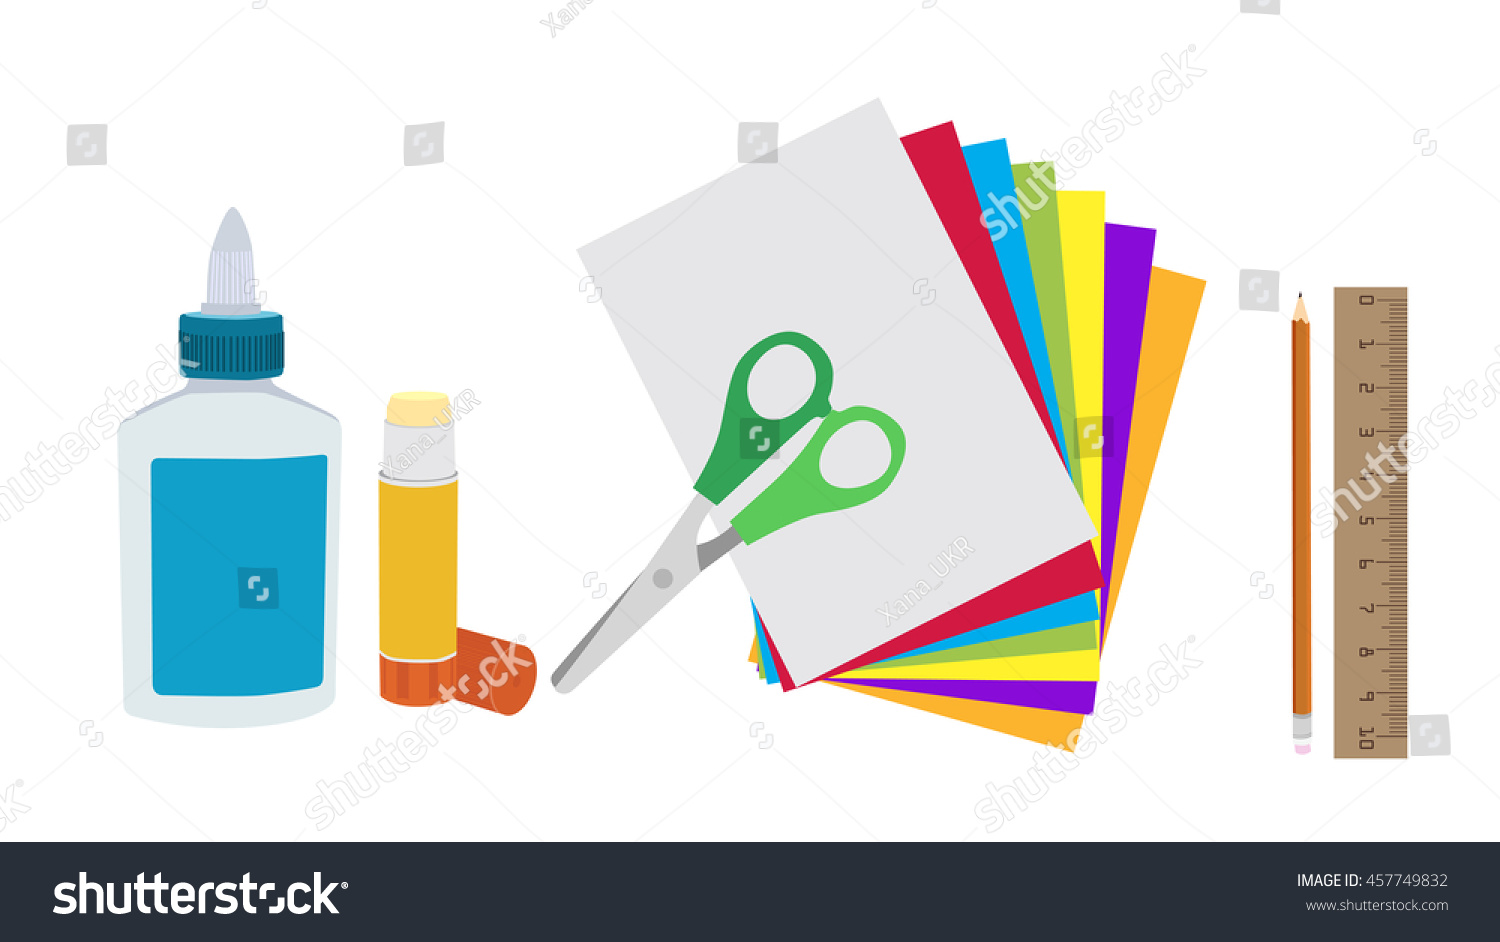 Glue Paper And Scissors Isolated Flat Vector Kids Art Craft Applique Supplies